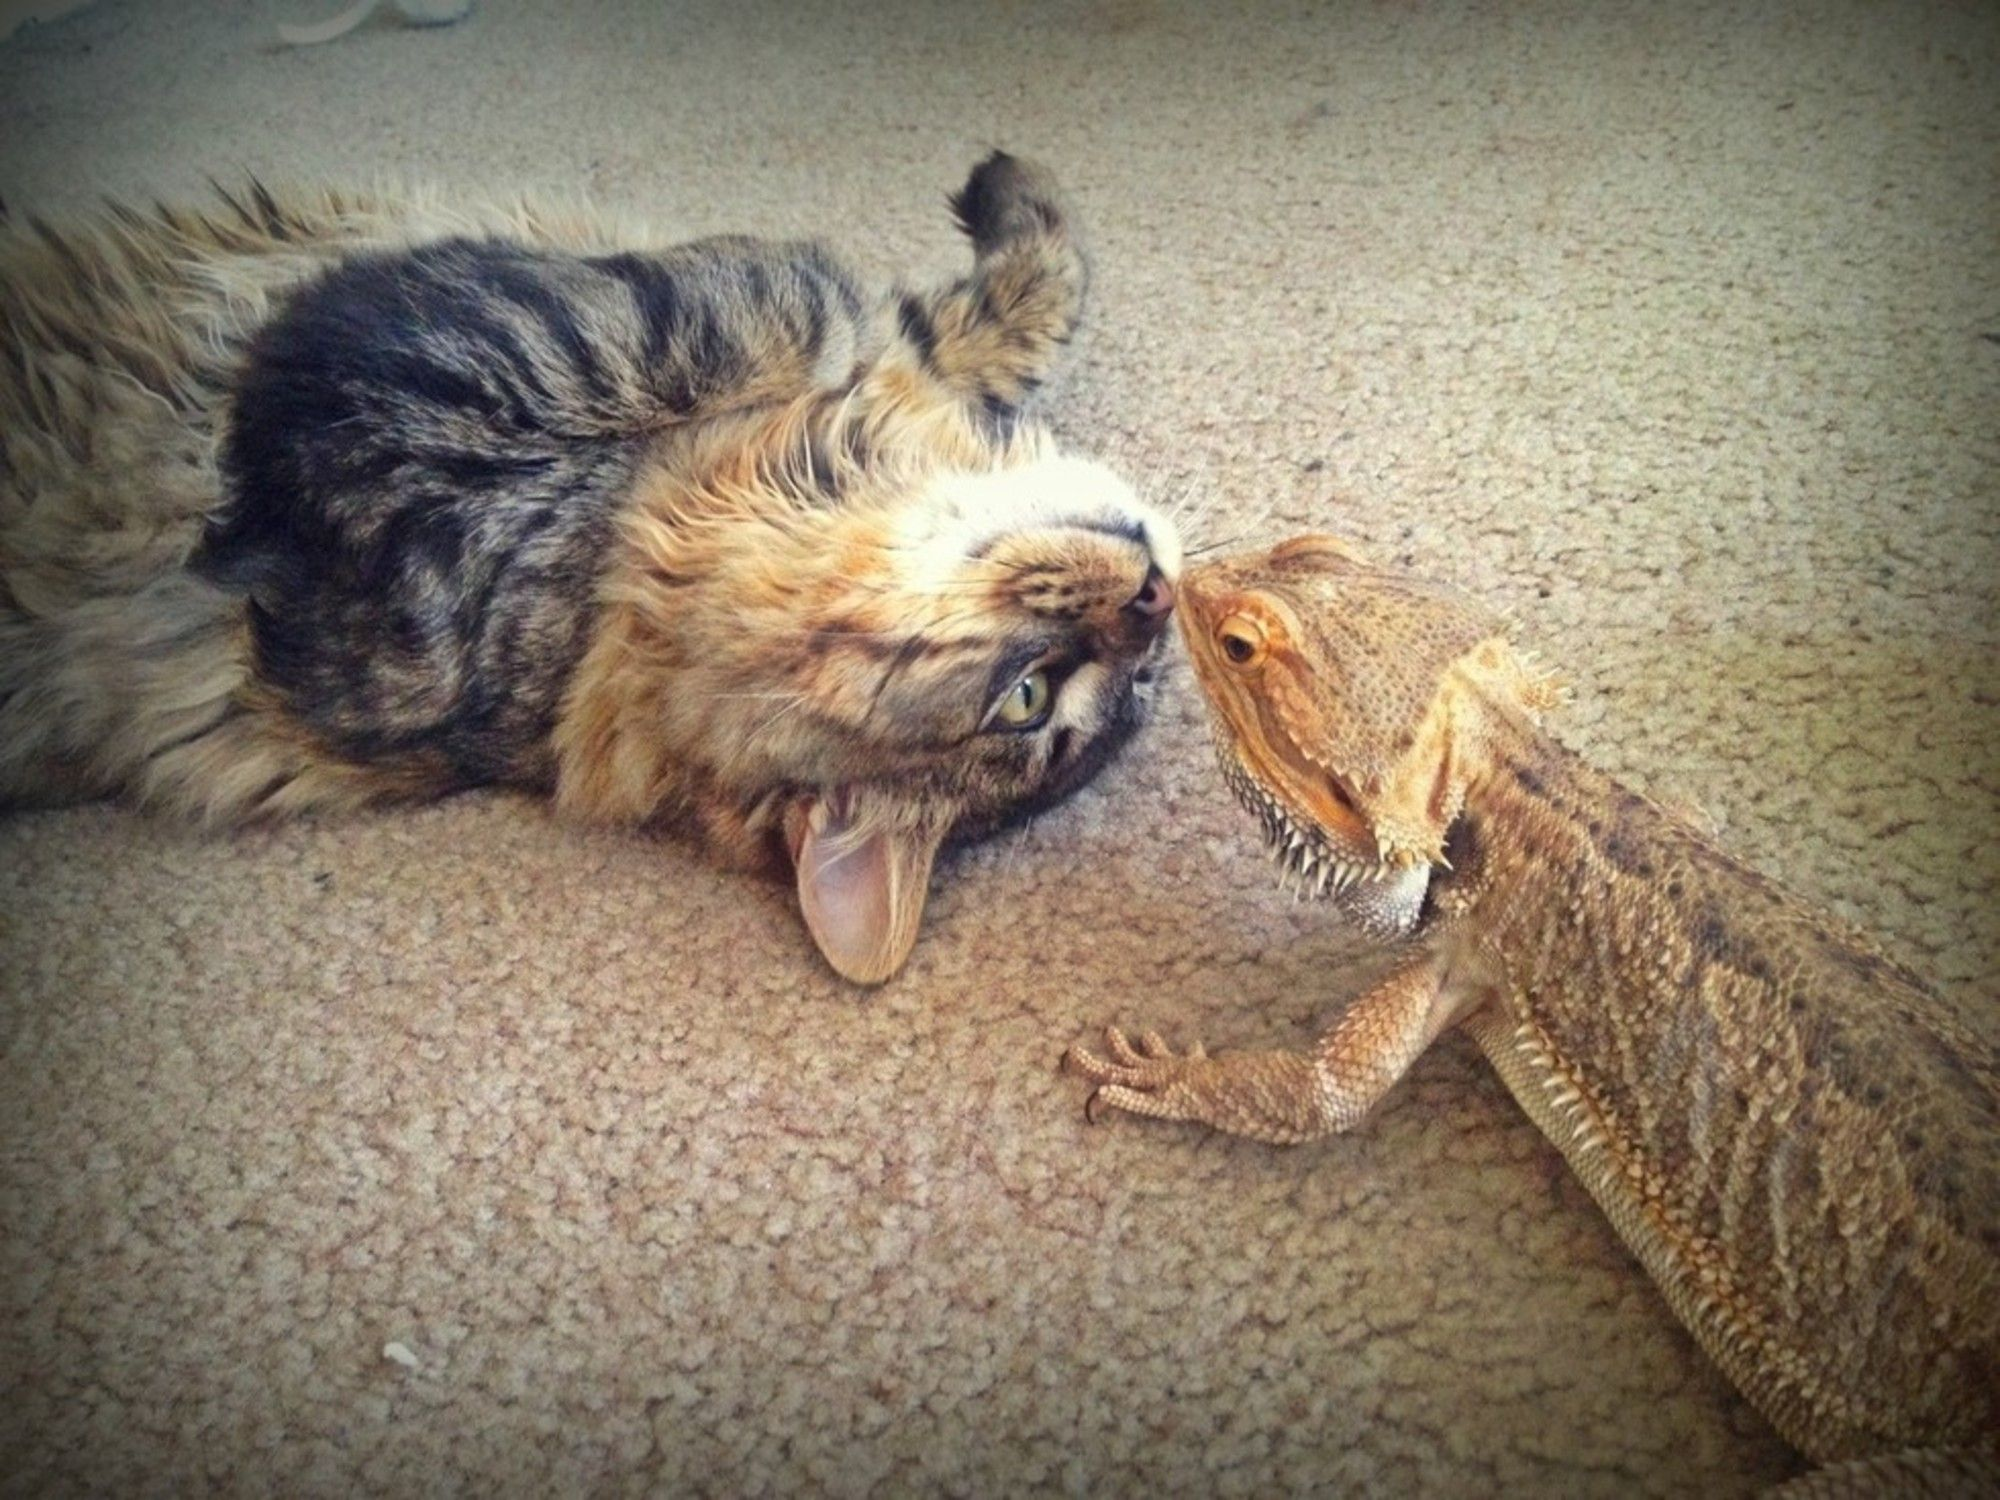 14 Cats Who Are Randomly Friends With Lizards  https://www.thedodo.com/cats-randomly-friends-lizards-1049905737.html